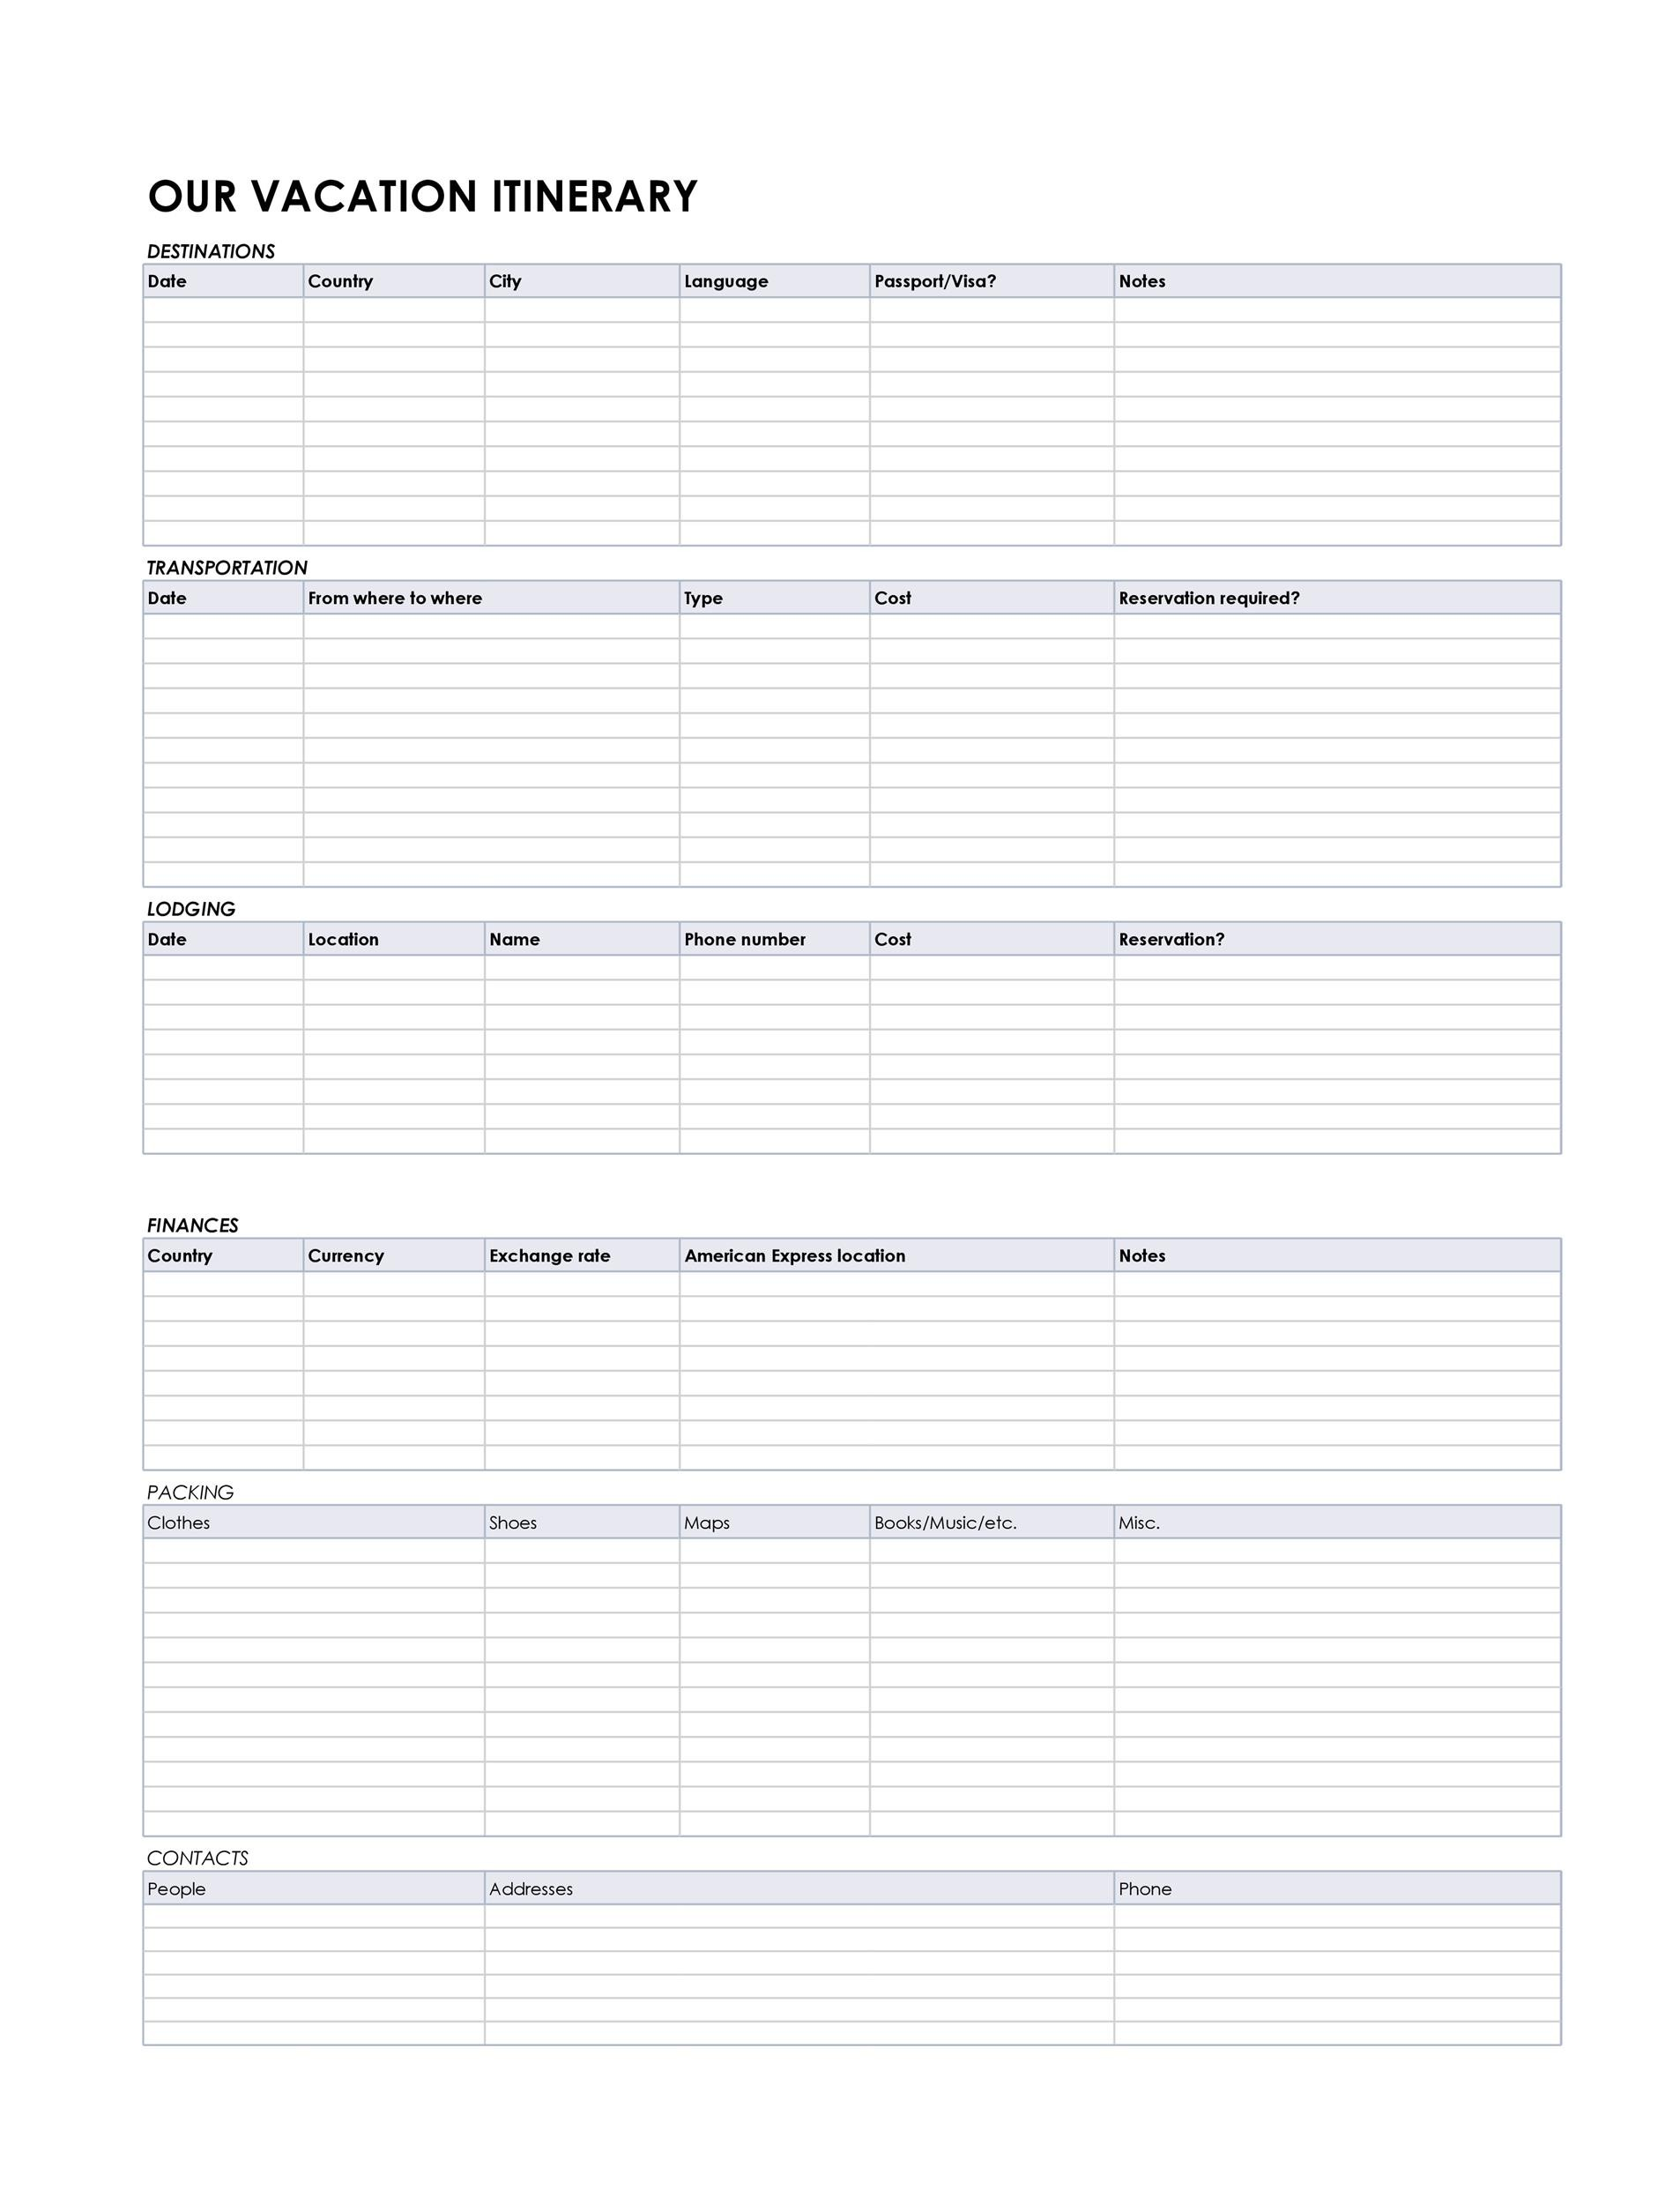 image relating to Printable Itinerary known as 30+ Itinerary Templates (Drive, Holiday, Family vacation, Flight)